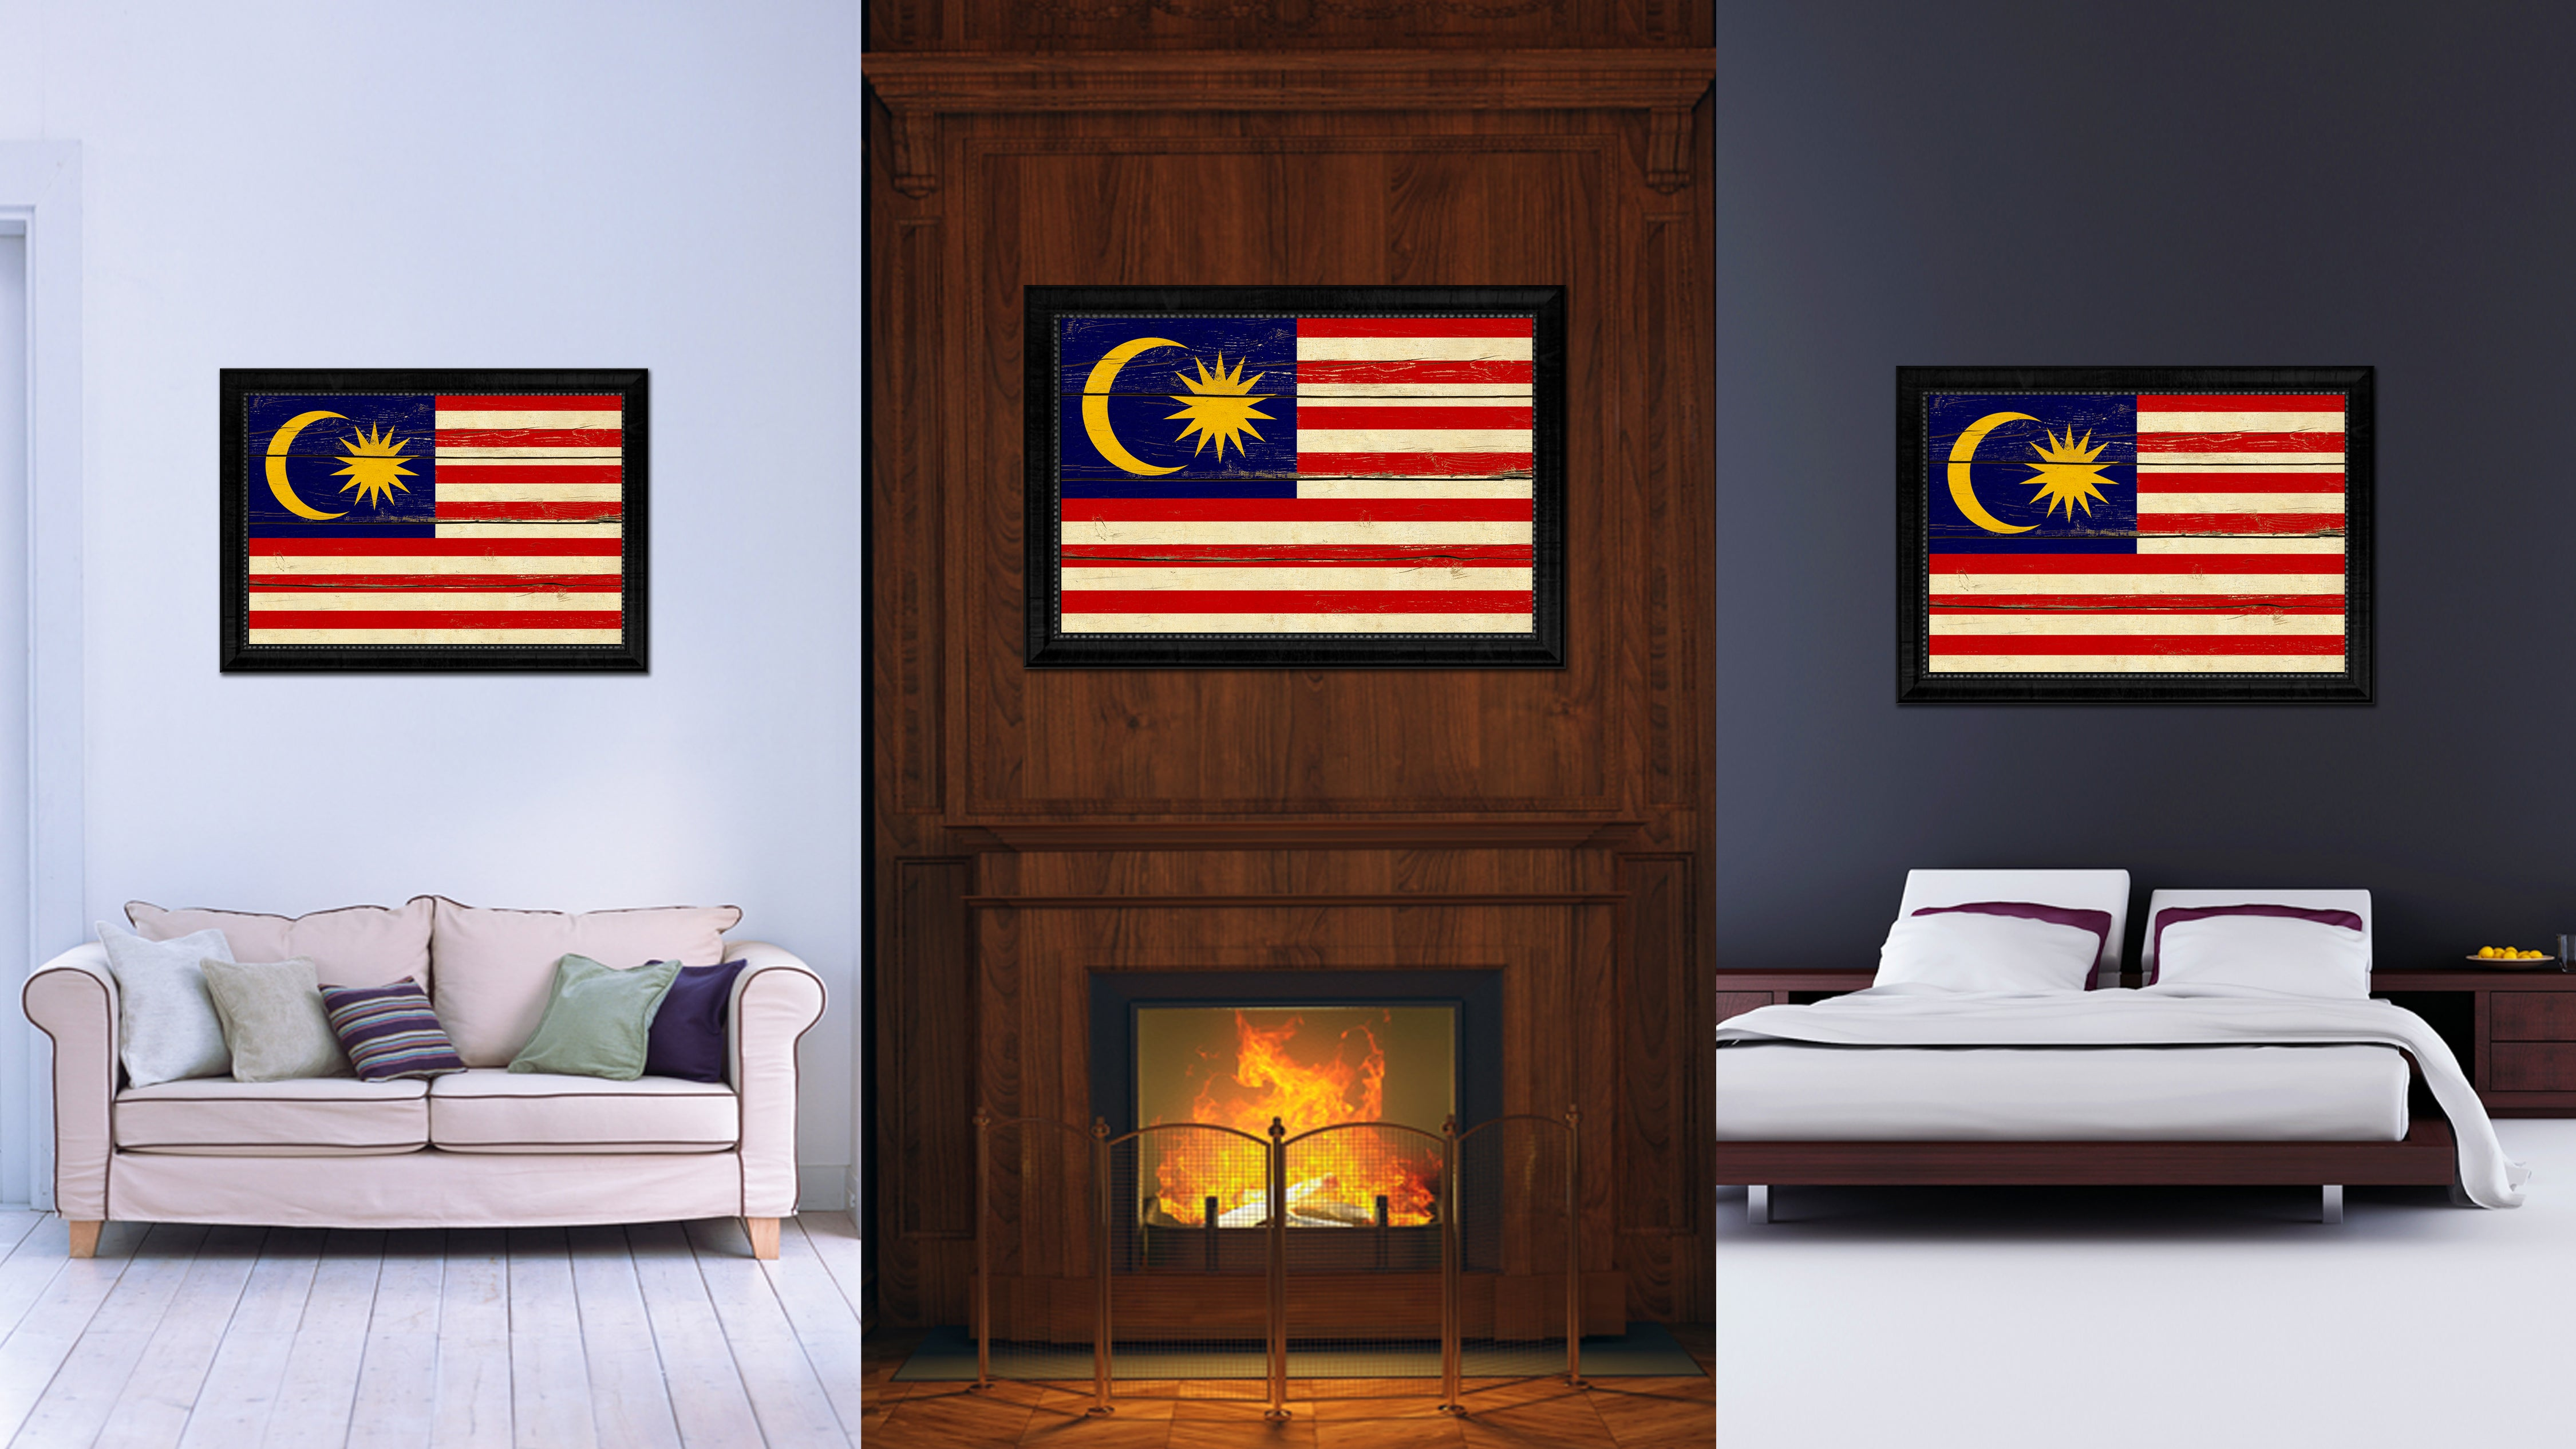 Malaysia Country Flag Vintage Canvas Print with Black Picture Frame Home Decor Gifts Wall Art Decoration Artwork